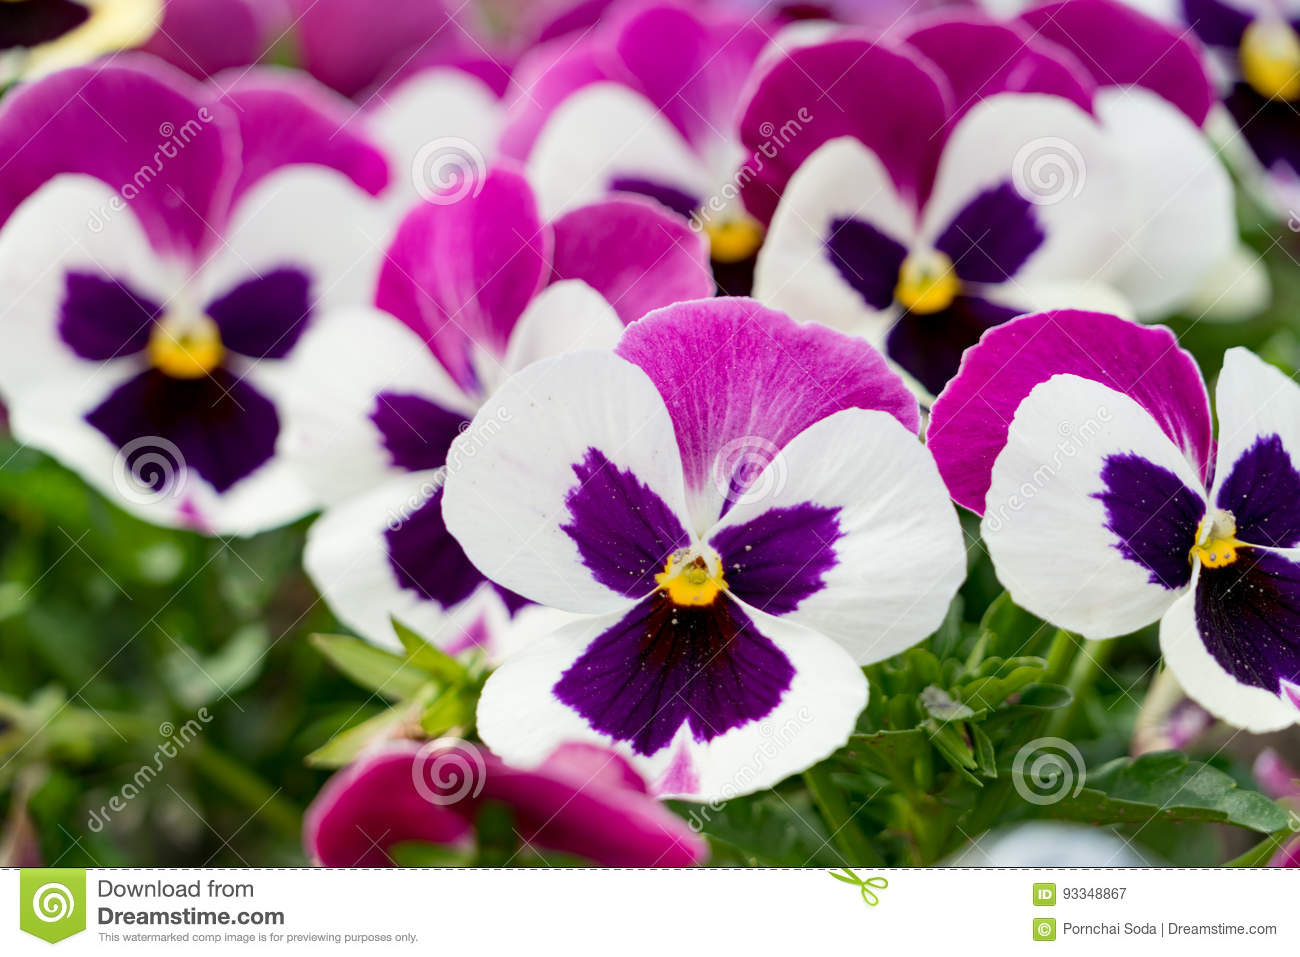 A Background Of Dark Pink And White Pansies Flower Stock Image